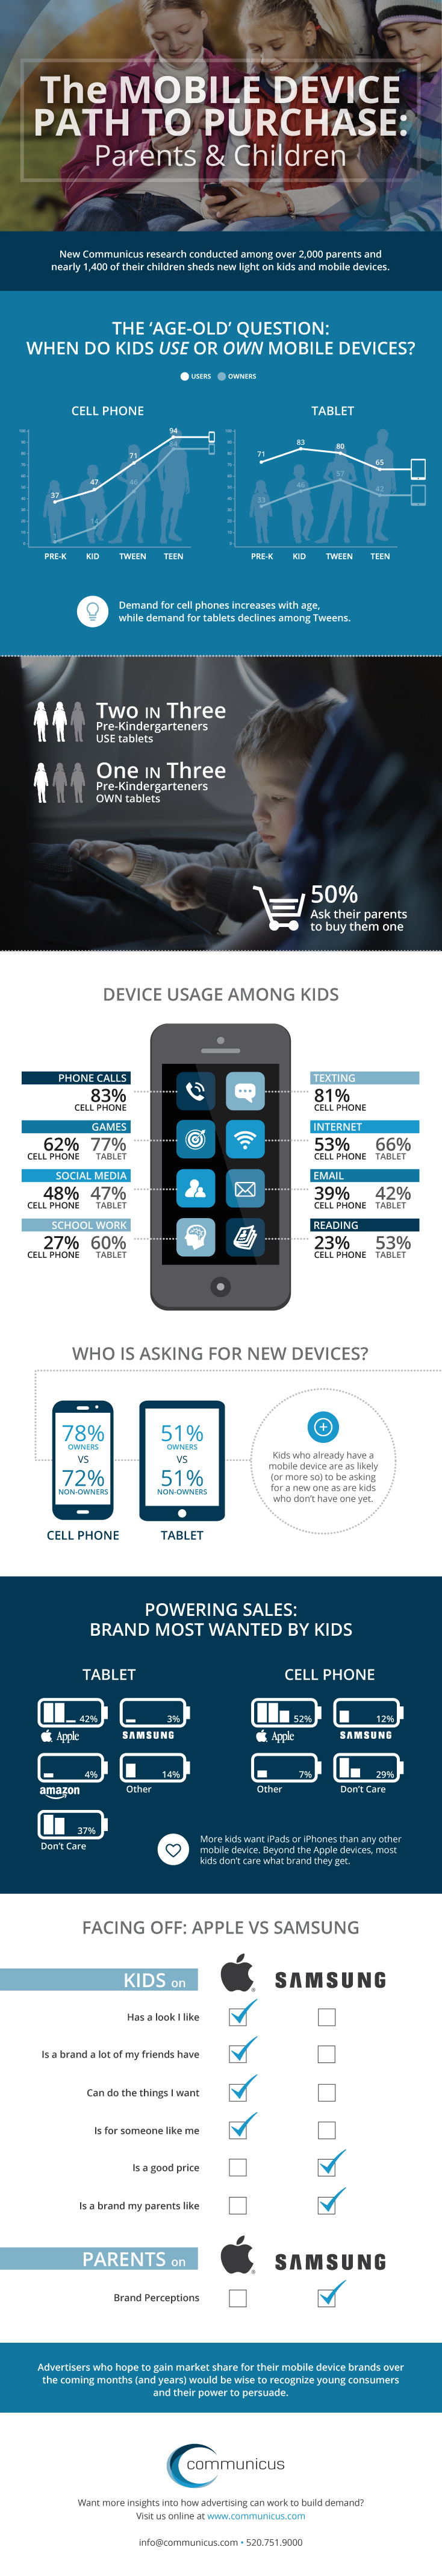 MobileDevices_Infographic_Finalb